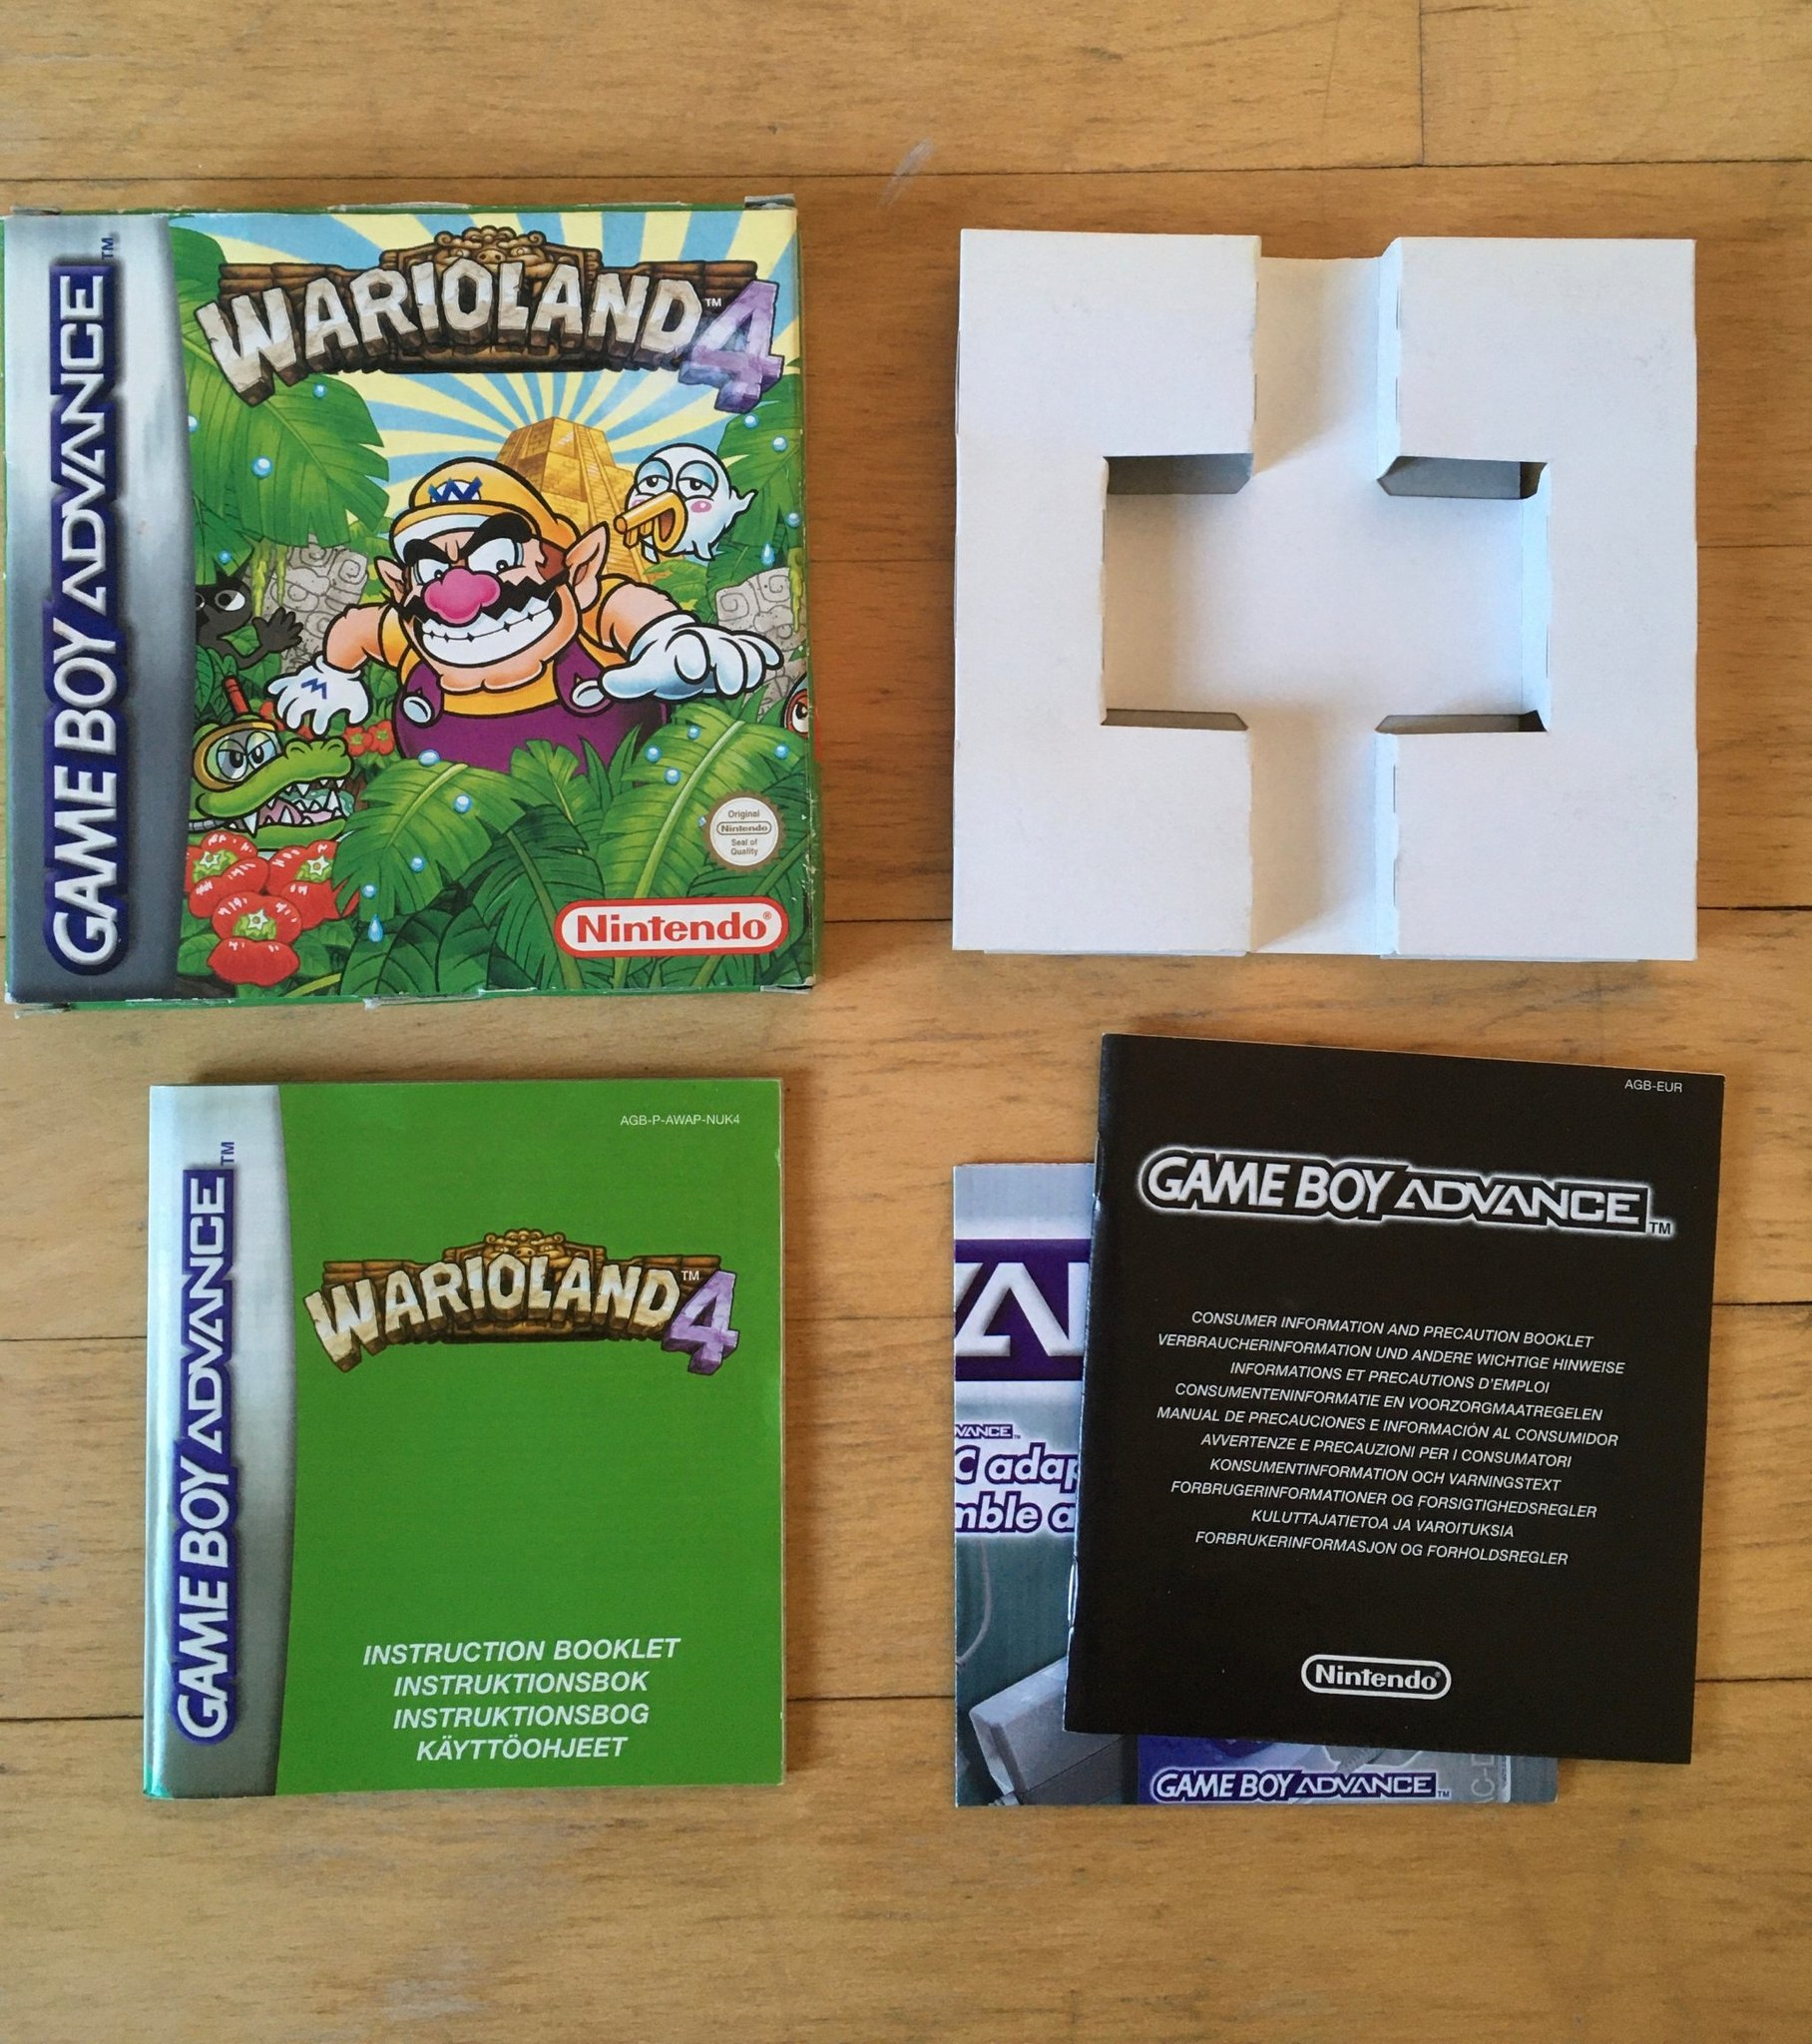 Wario Land 4 (Bergsala) - Kartong, manual - GBA - Game Boy - Gameboy - Warioland